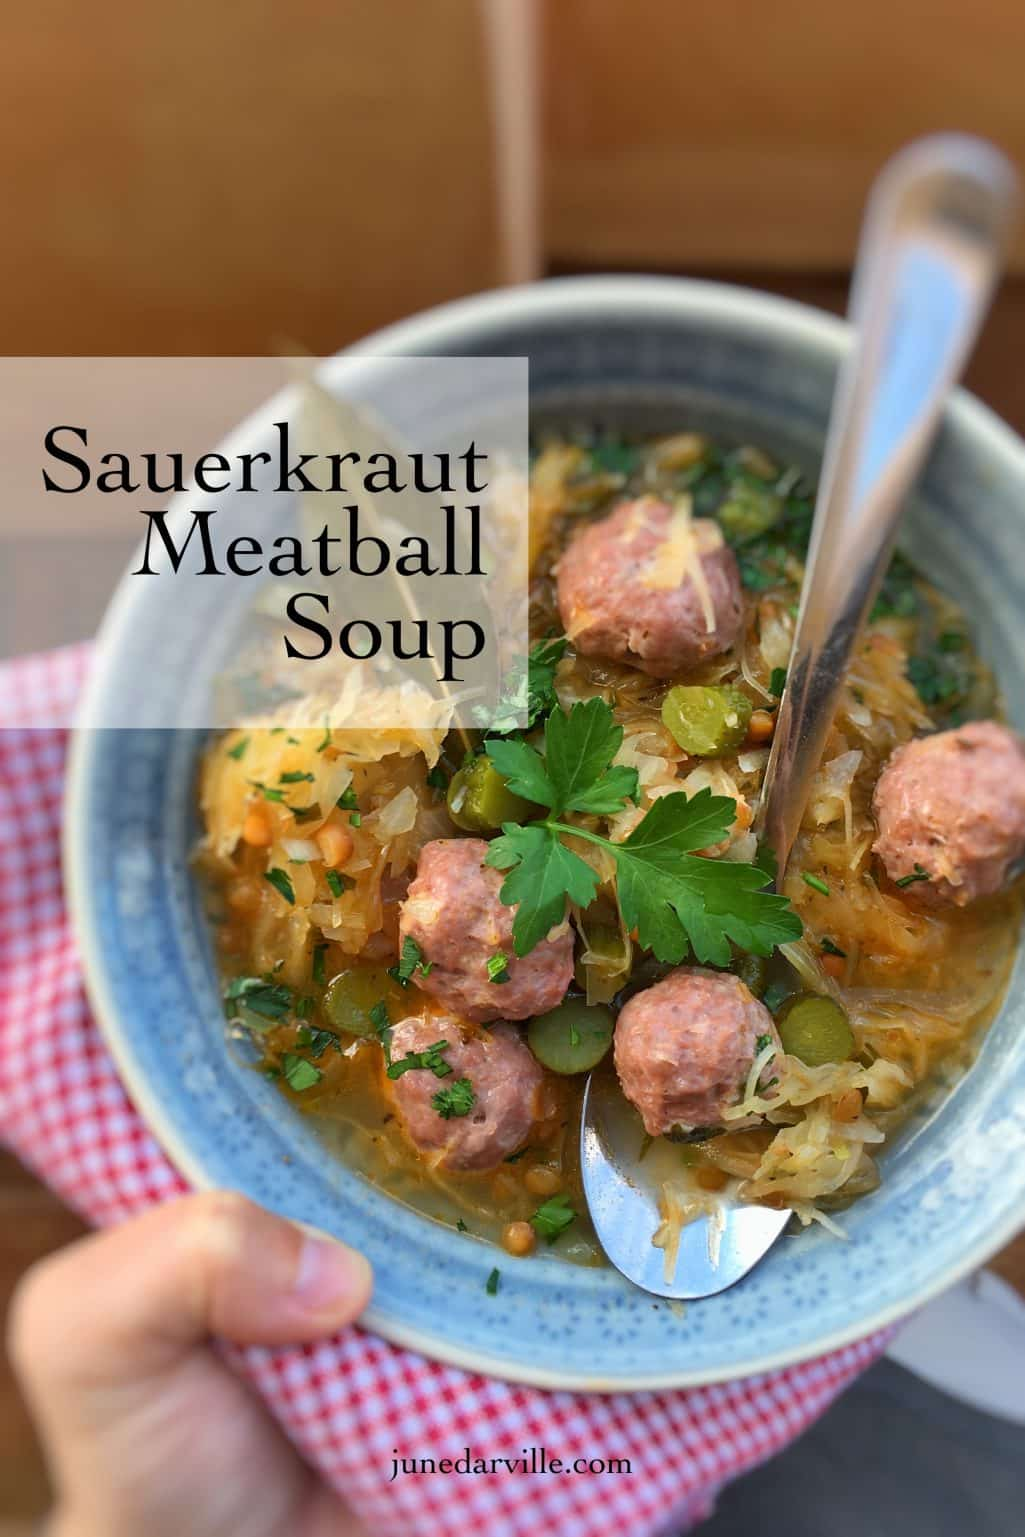 This is a great and filling meal soup: delicious meatballs, lentil and mustard are what you need for this sauerkraut soup recipe!